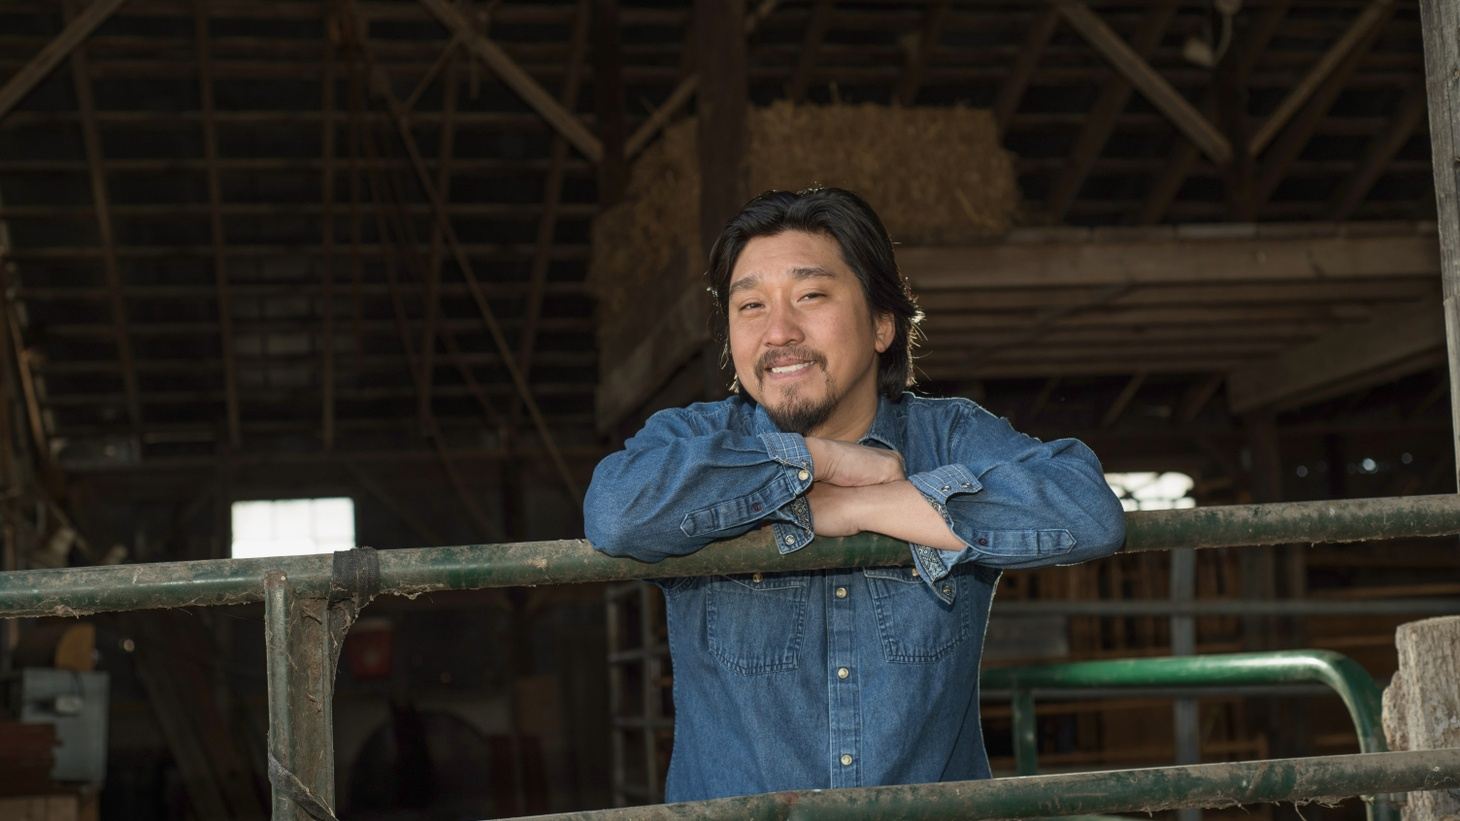 Chef Edward Lee is working with local chefs around the country to turn restaurants into relief centers. These centers give food and provisions to restaurant workers who lost their jobs or had their hours/salaries significantly cut.